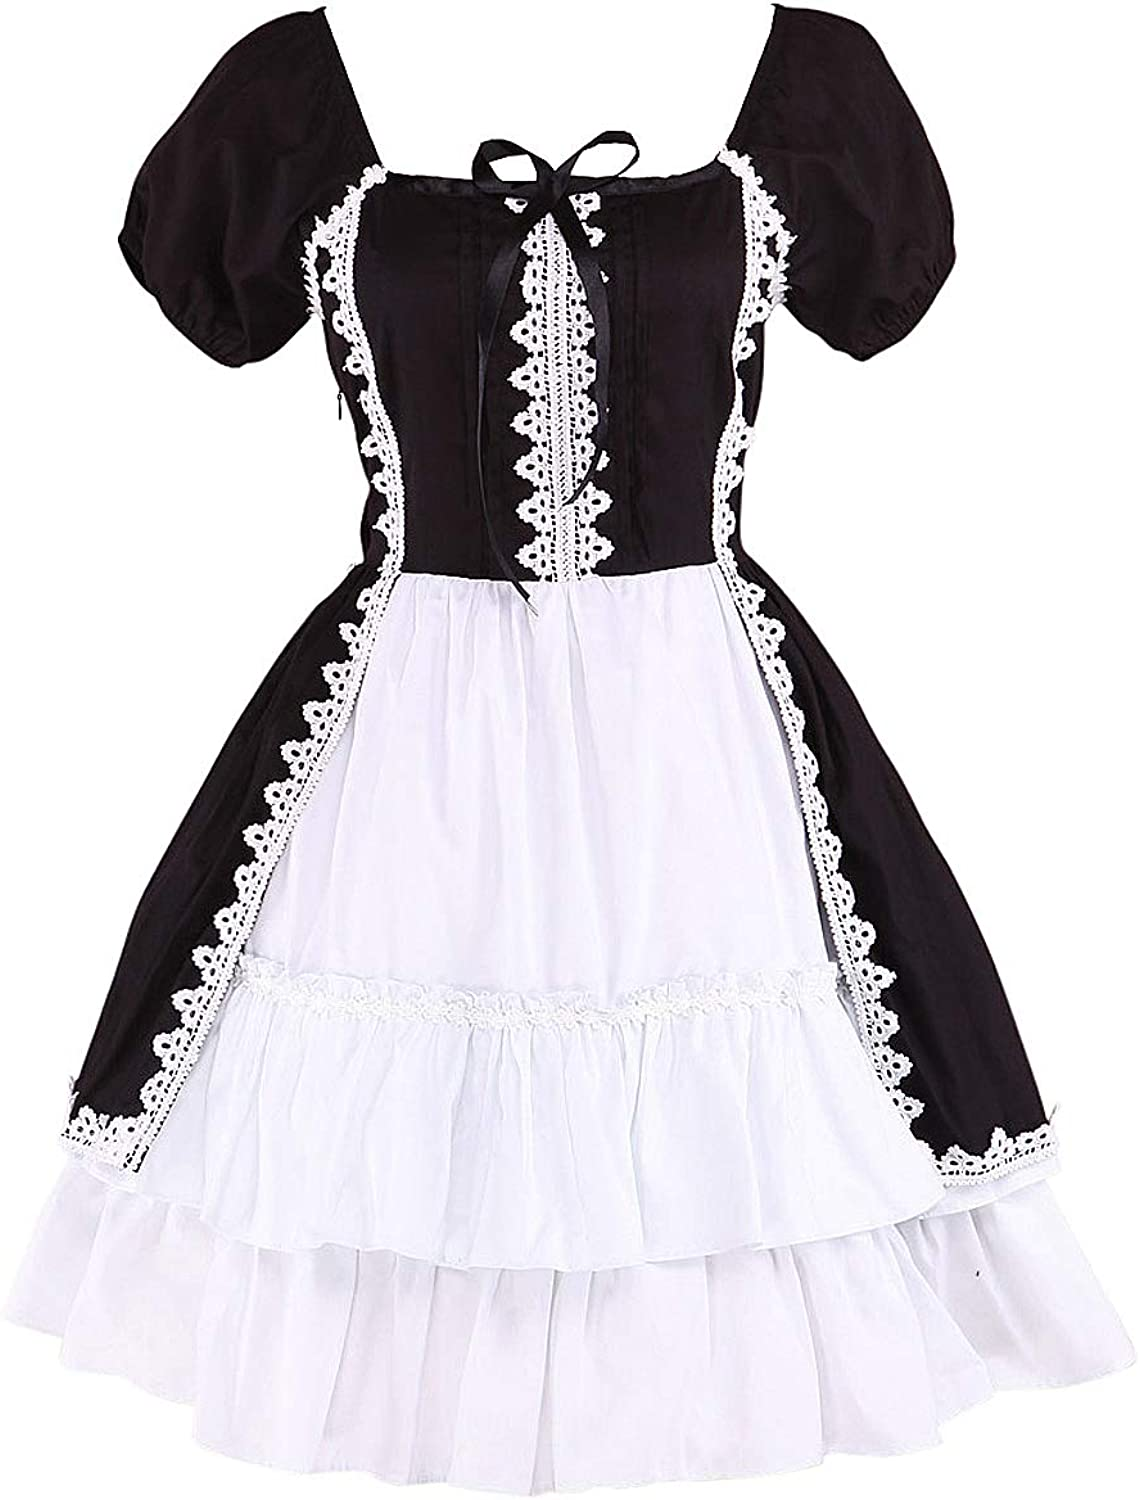 Antaina Black and White Cotton Lace Ruffle Sexy Gohtic Lolita Cosplay Dress